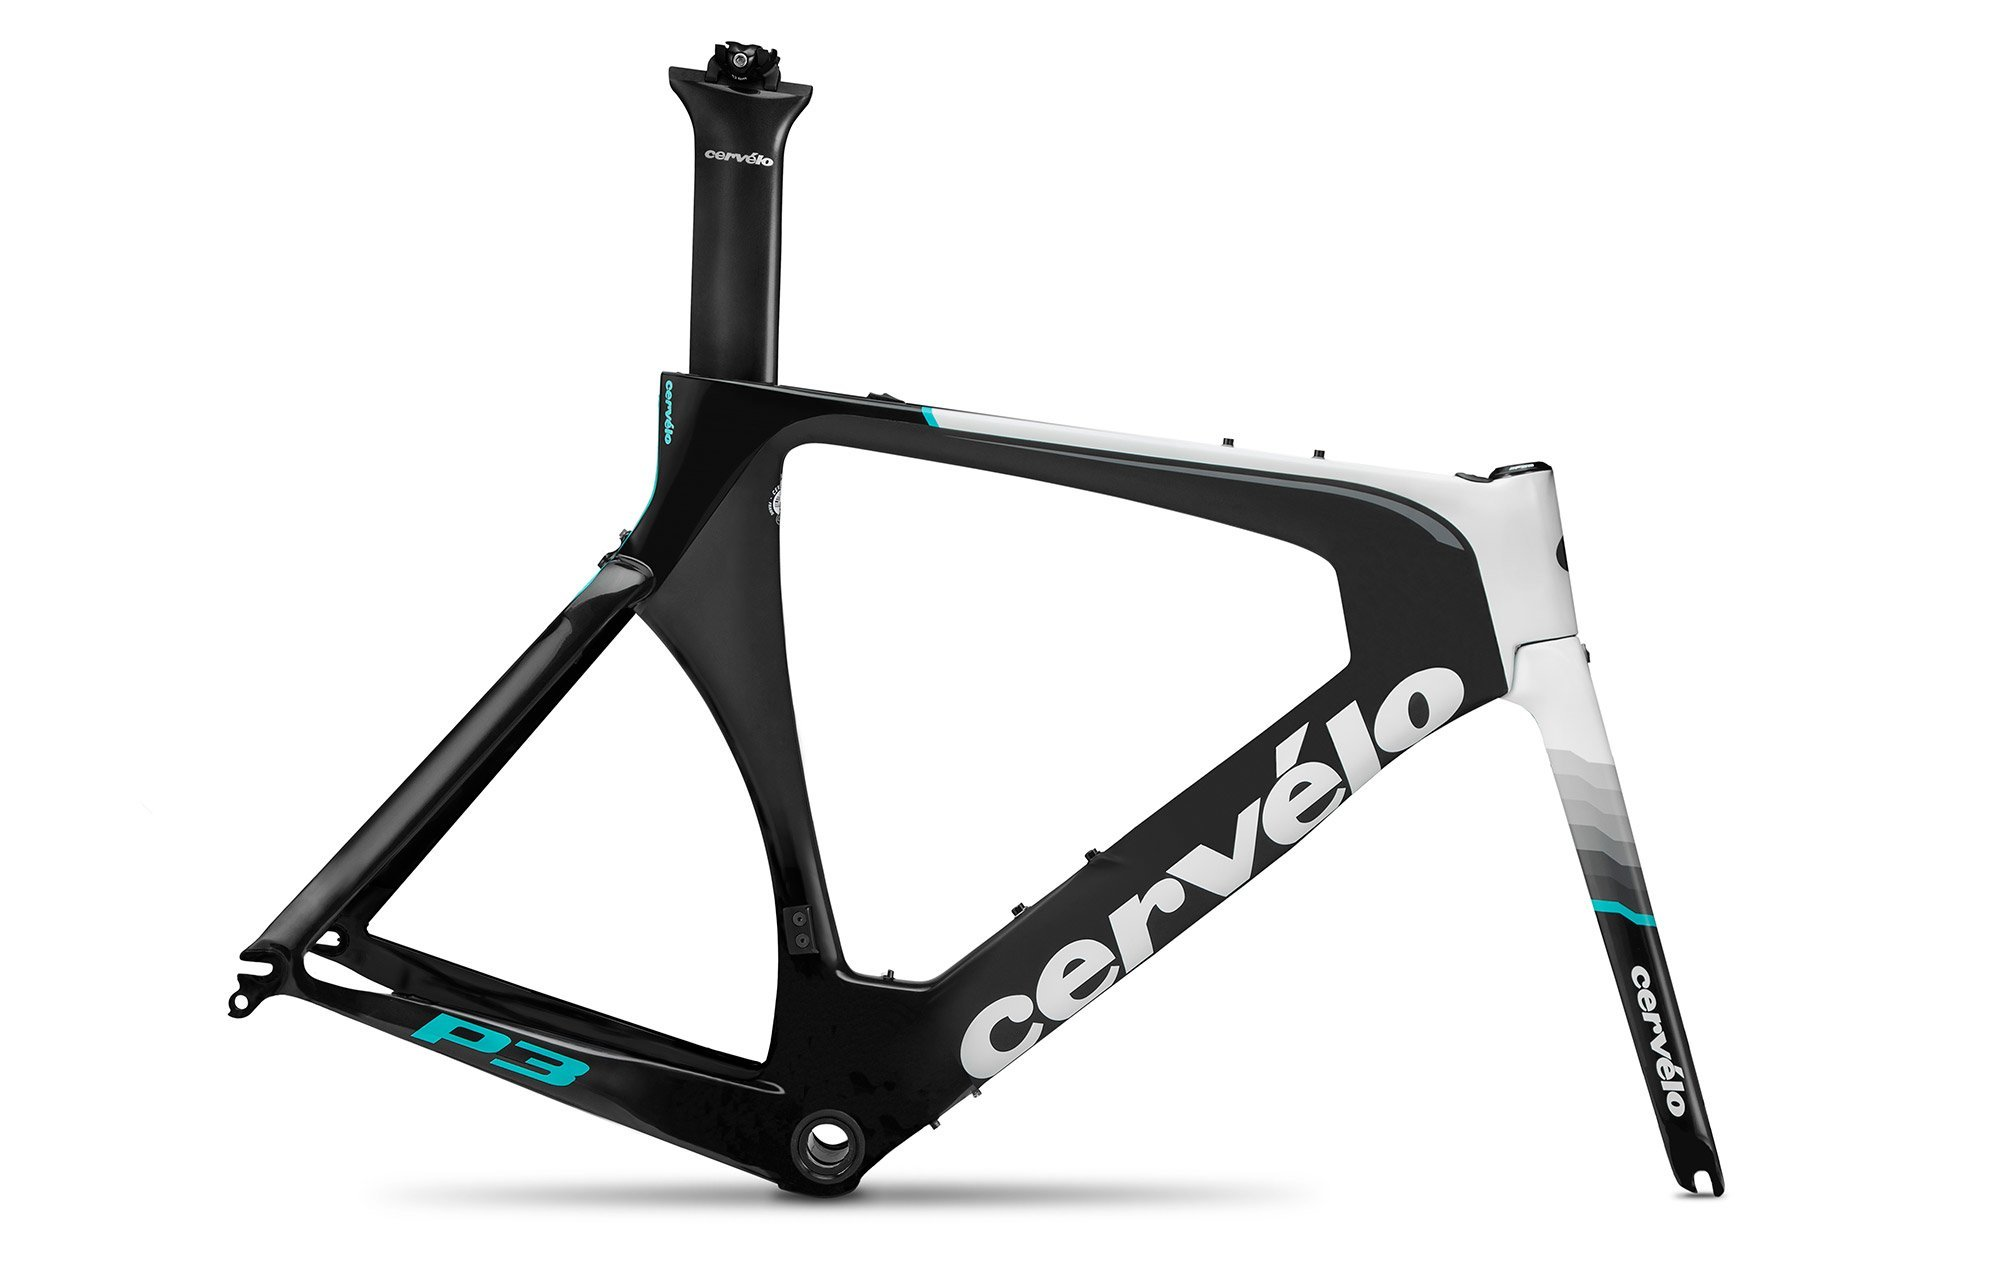 c6c62d7bb23 cervelo p3 frame weight | foxytoon.co